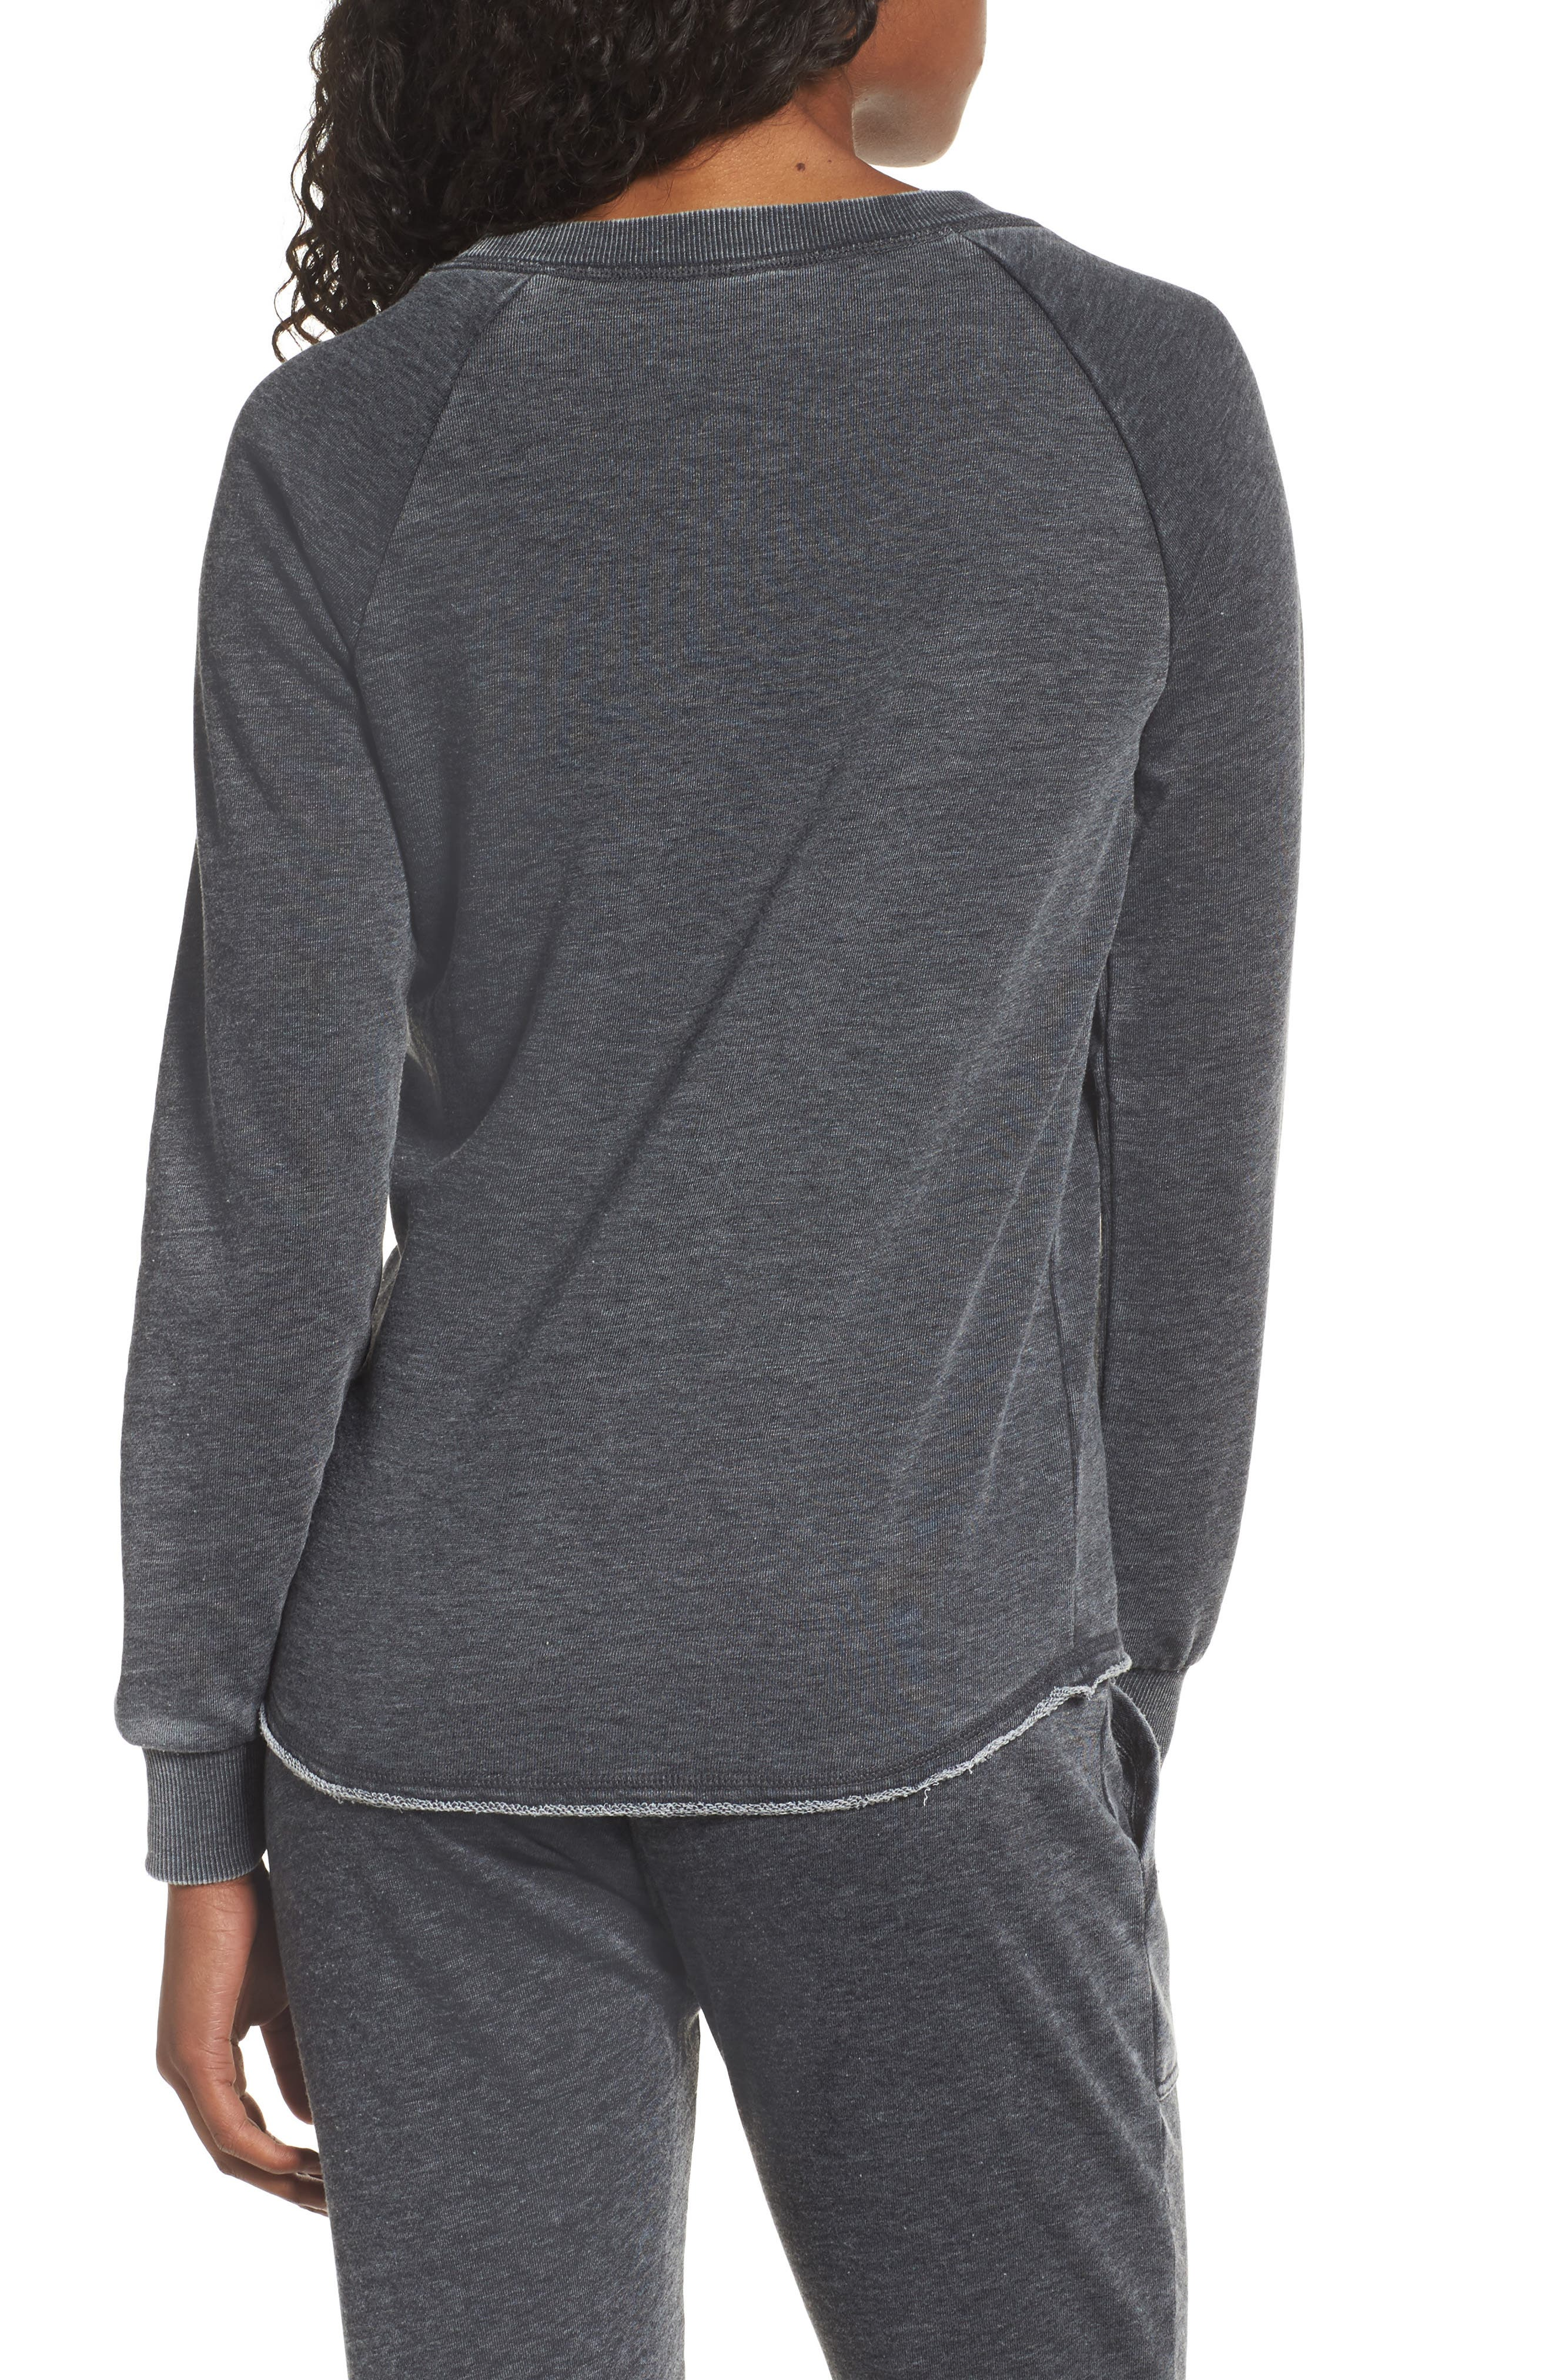 Lazy Day Pullover,                             Alternate thumbnail 2, color,                             Washed Black